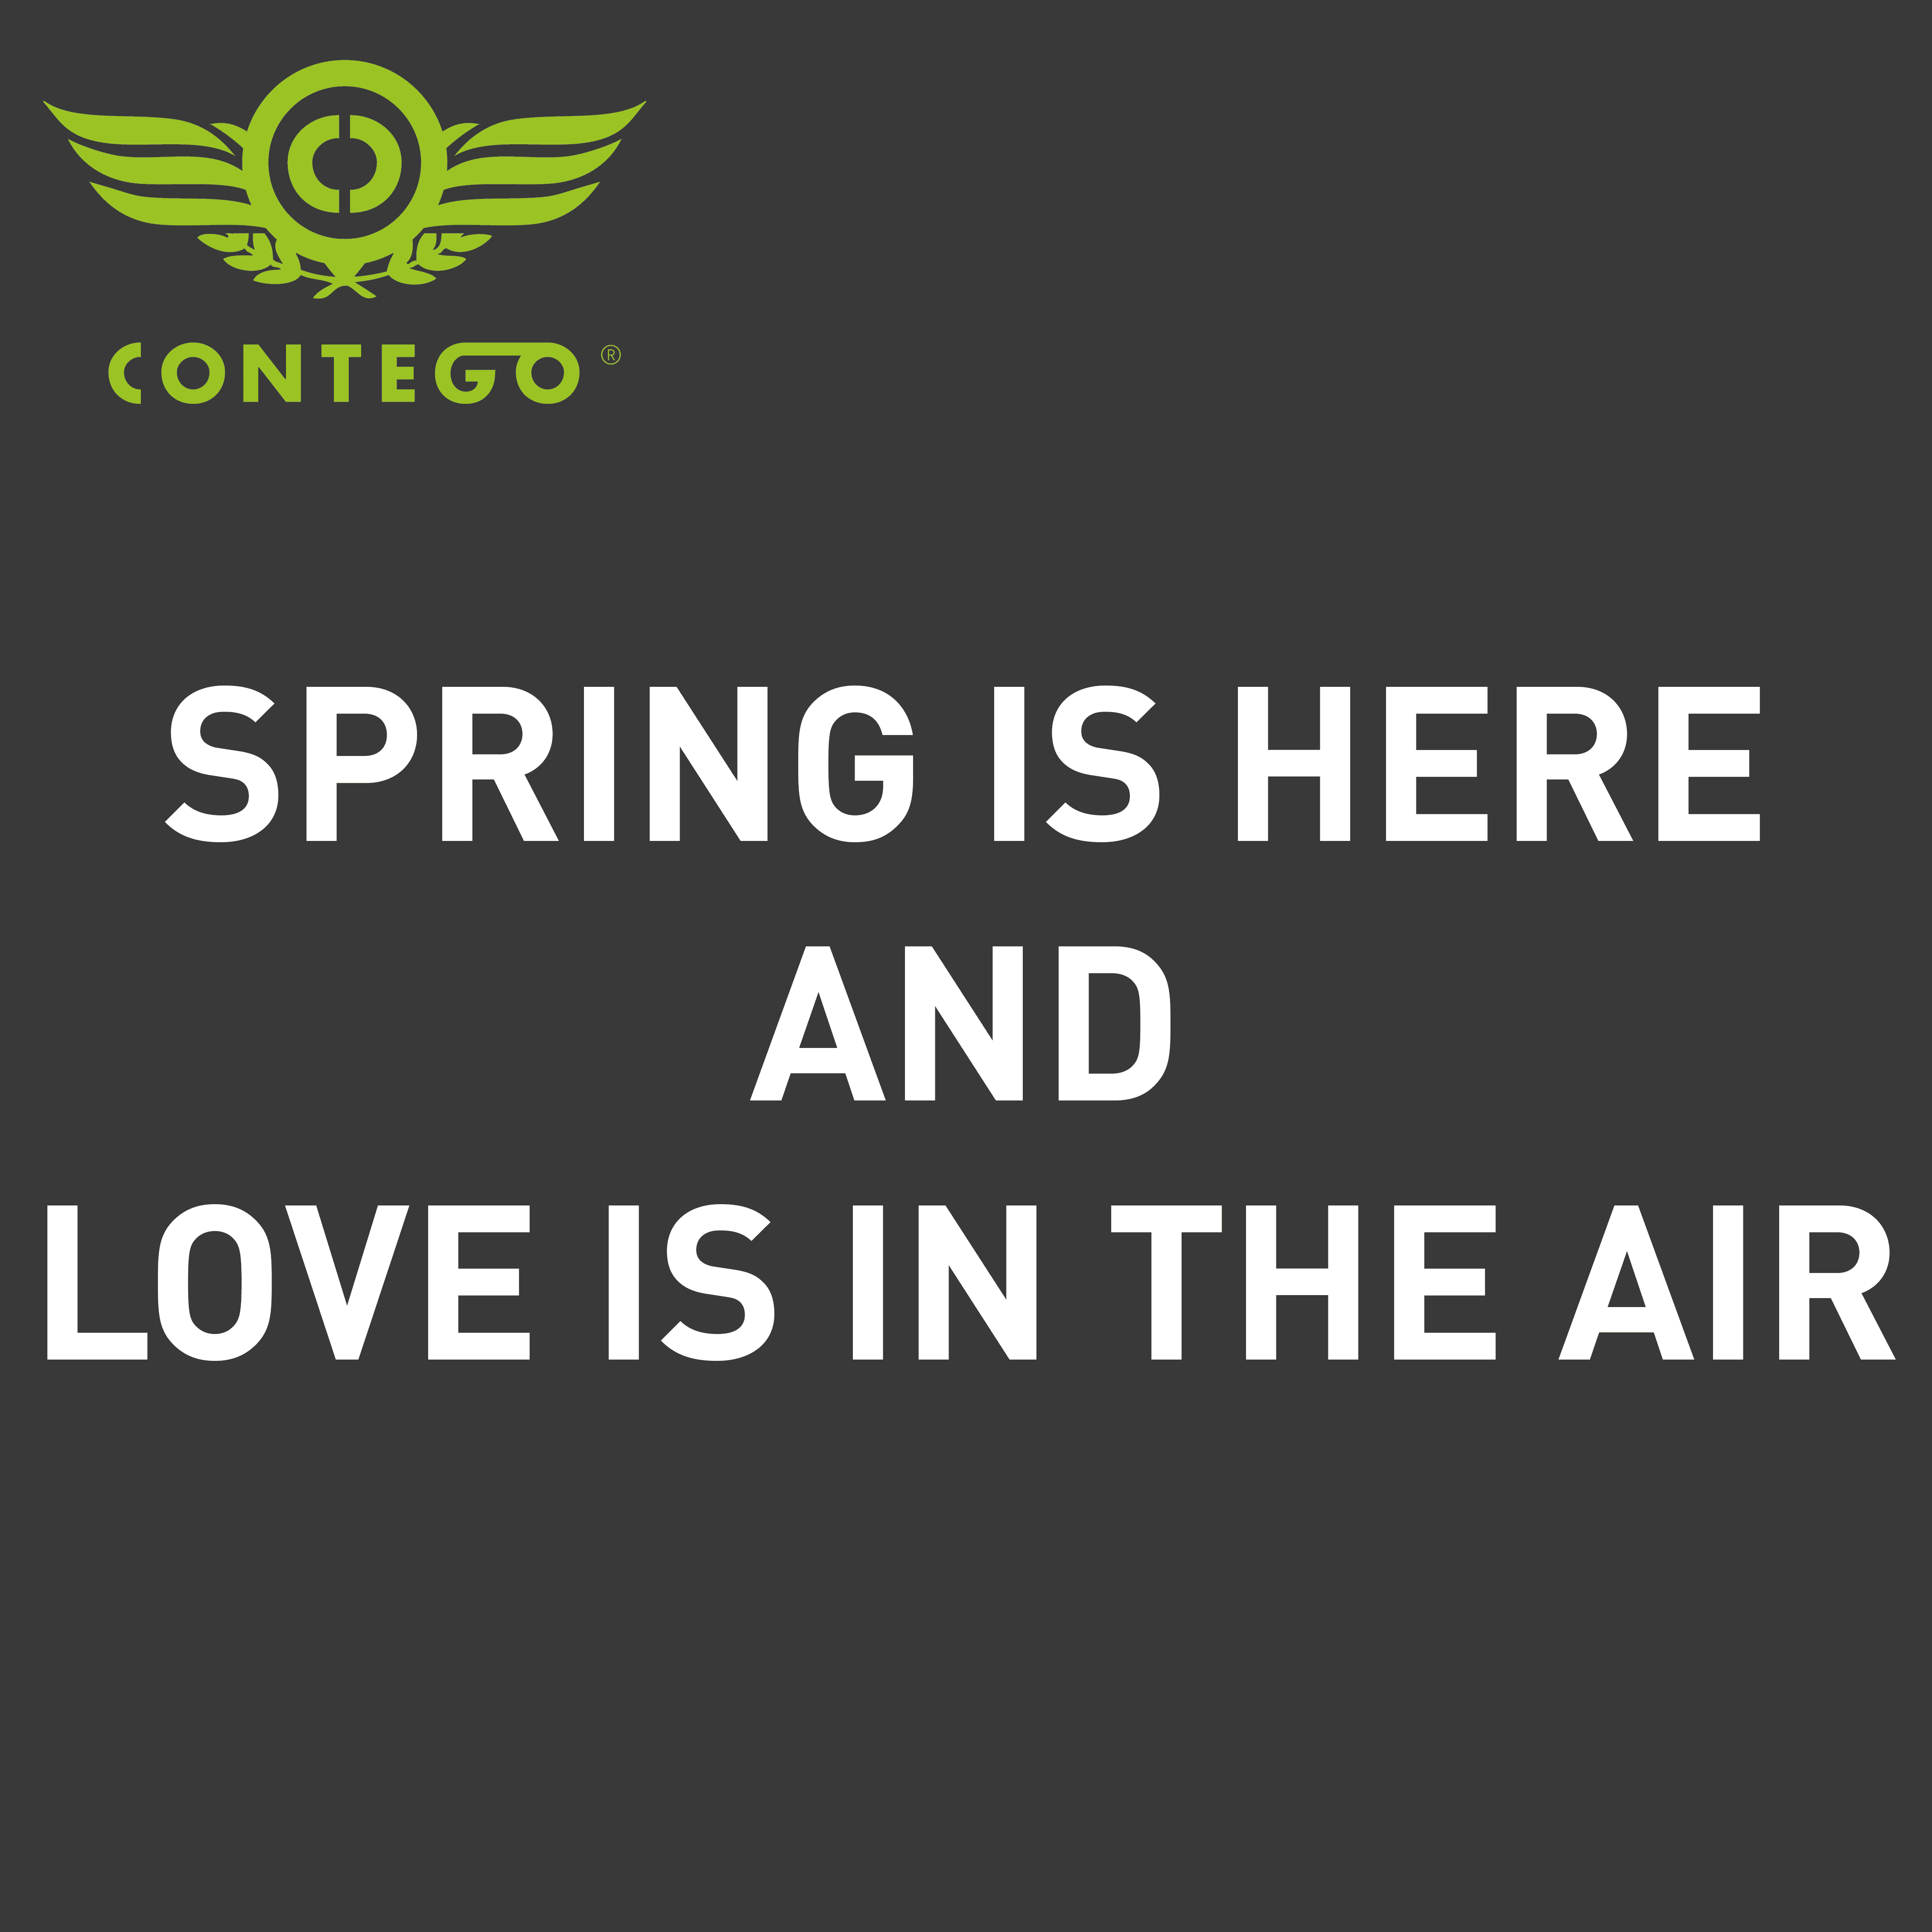 Spring is here and love is in the air